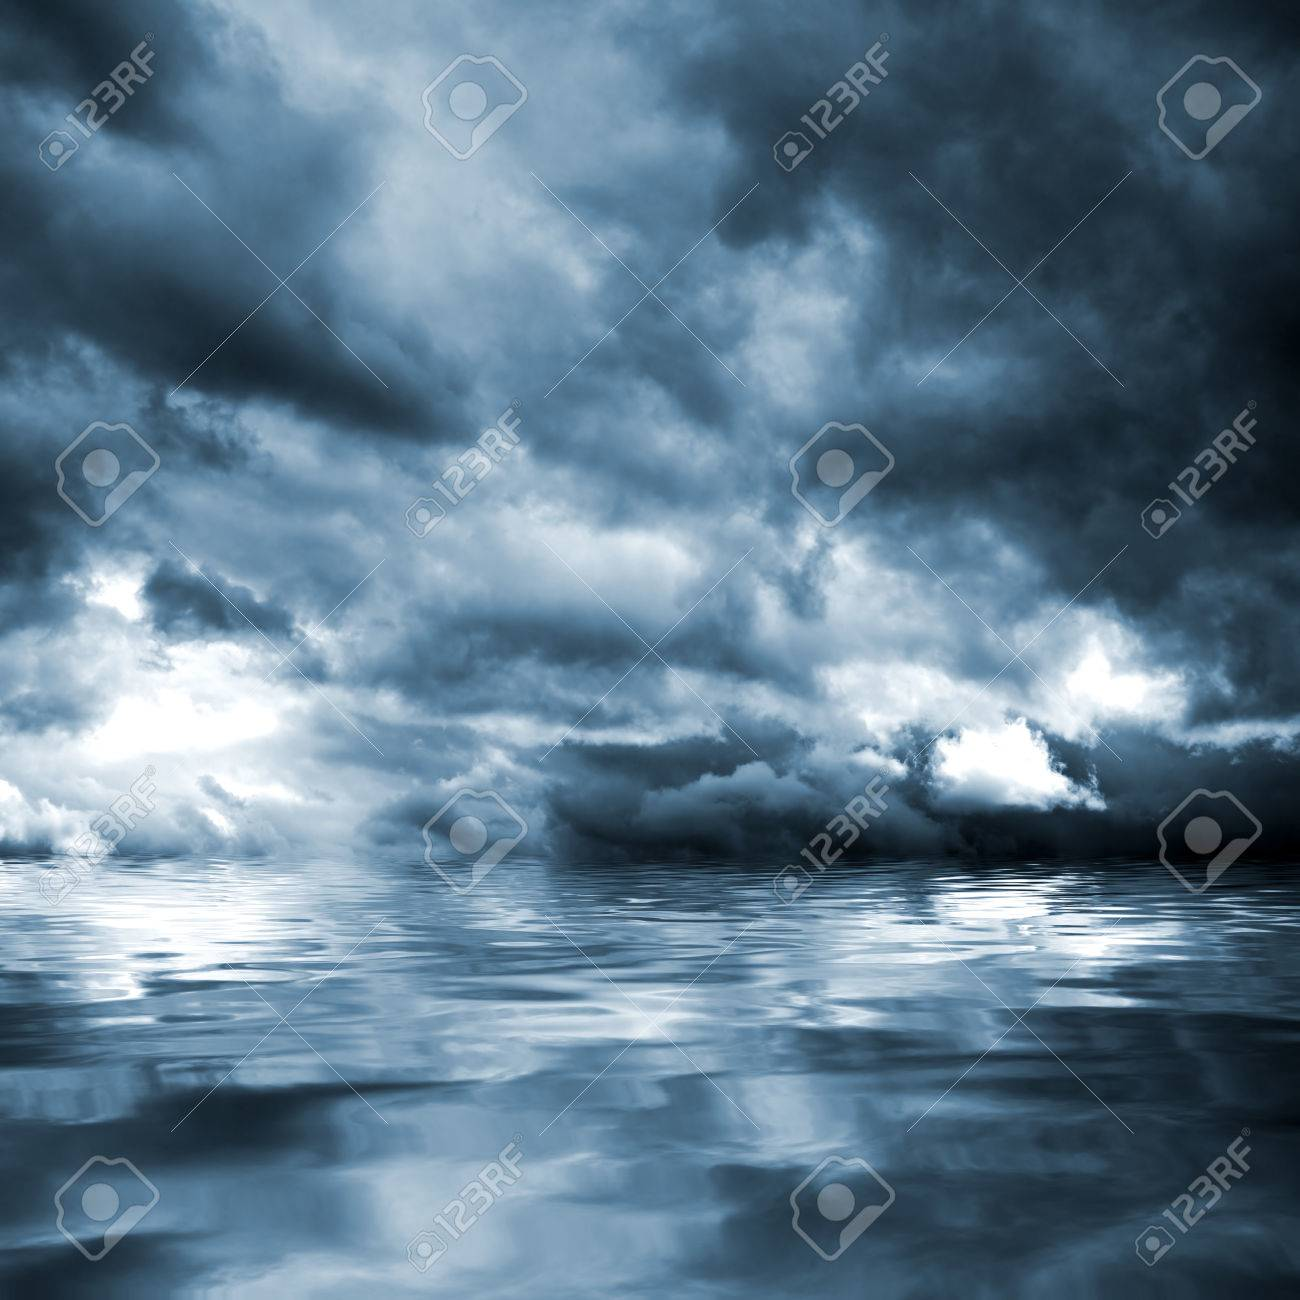 Dark storm clouds before rain above the water level. Natural background. - 46298295